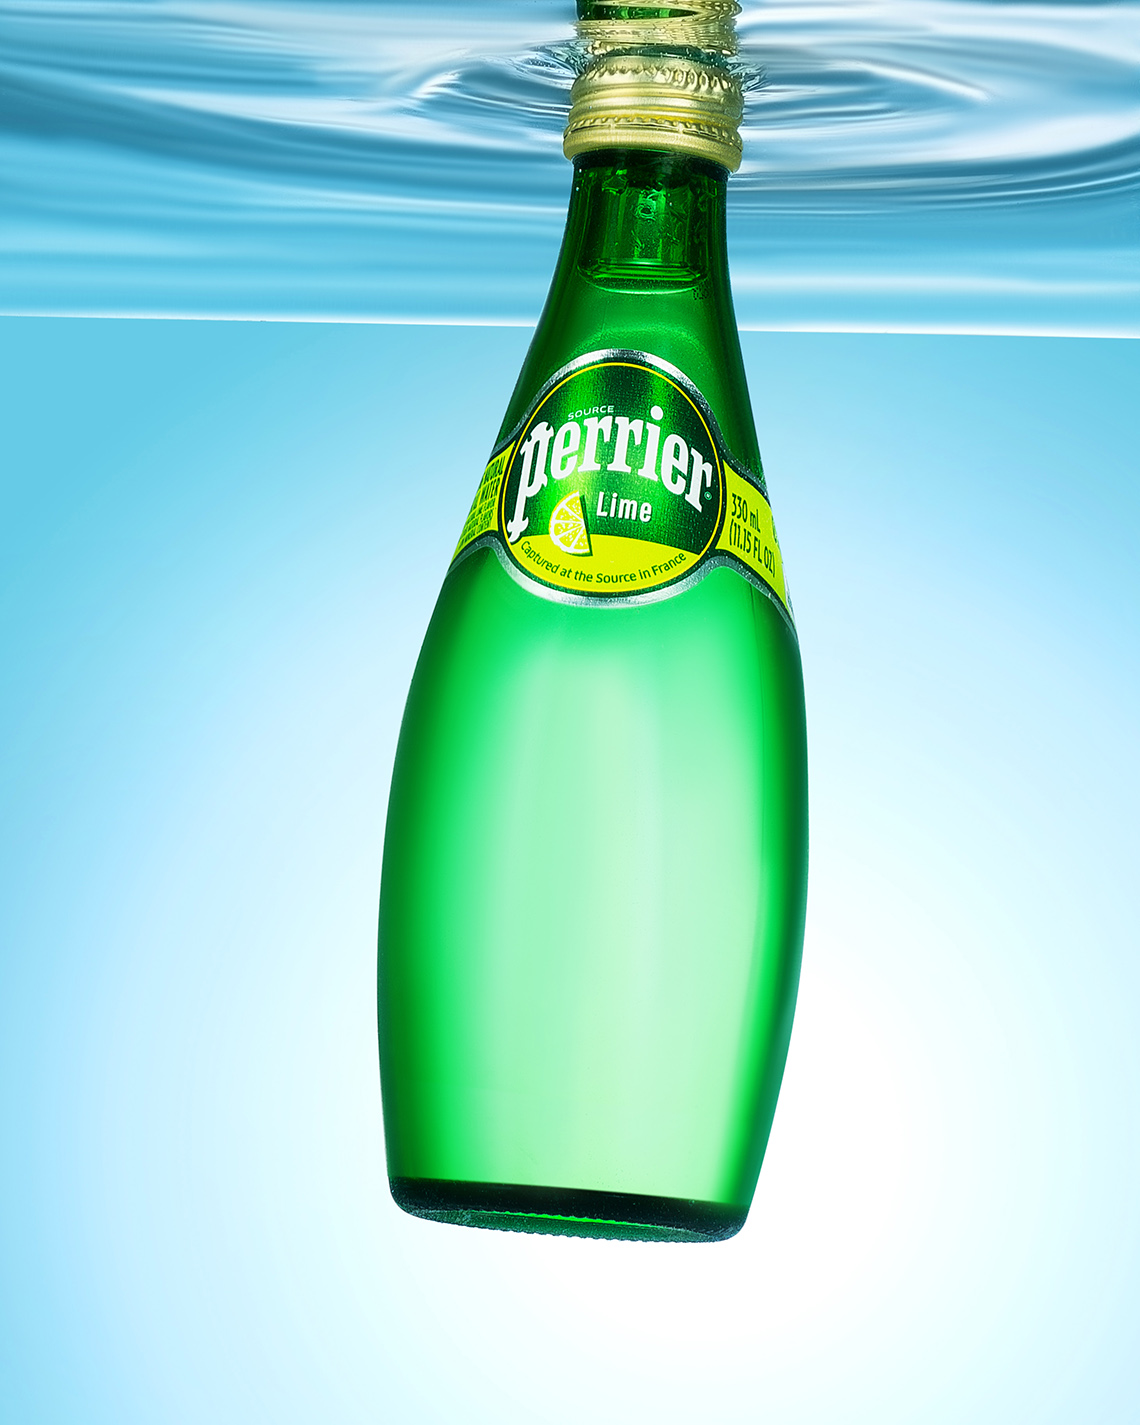 New-york-Splash-Photography-Perrier